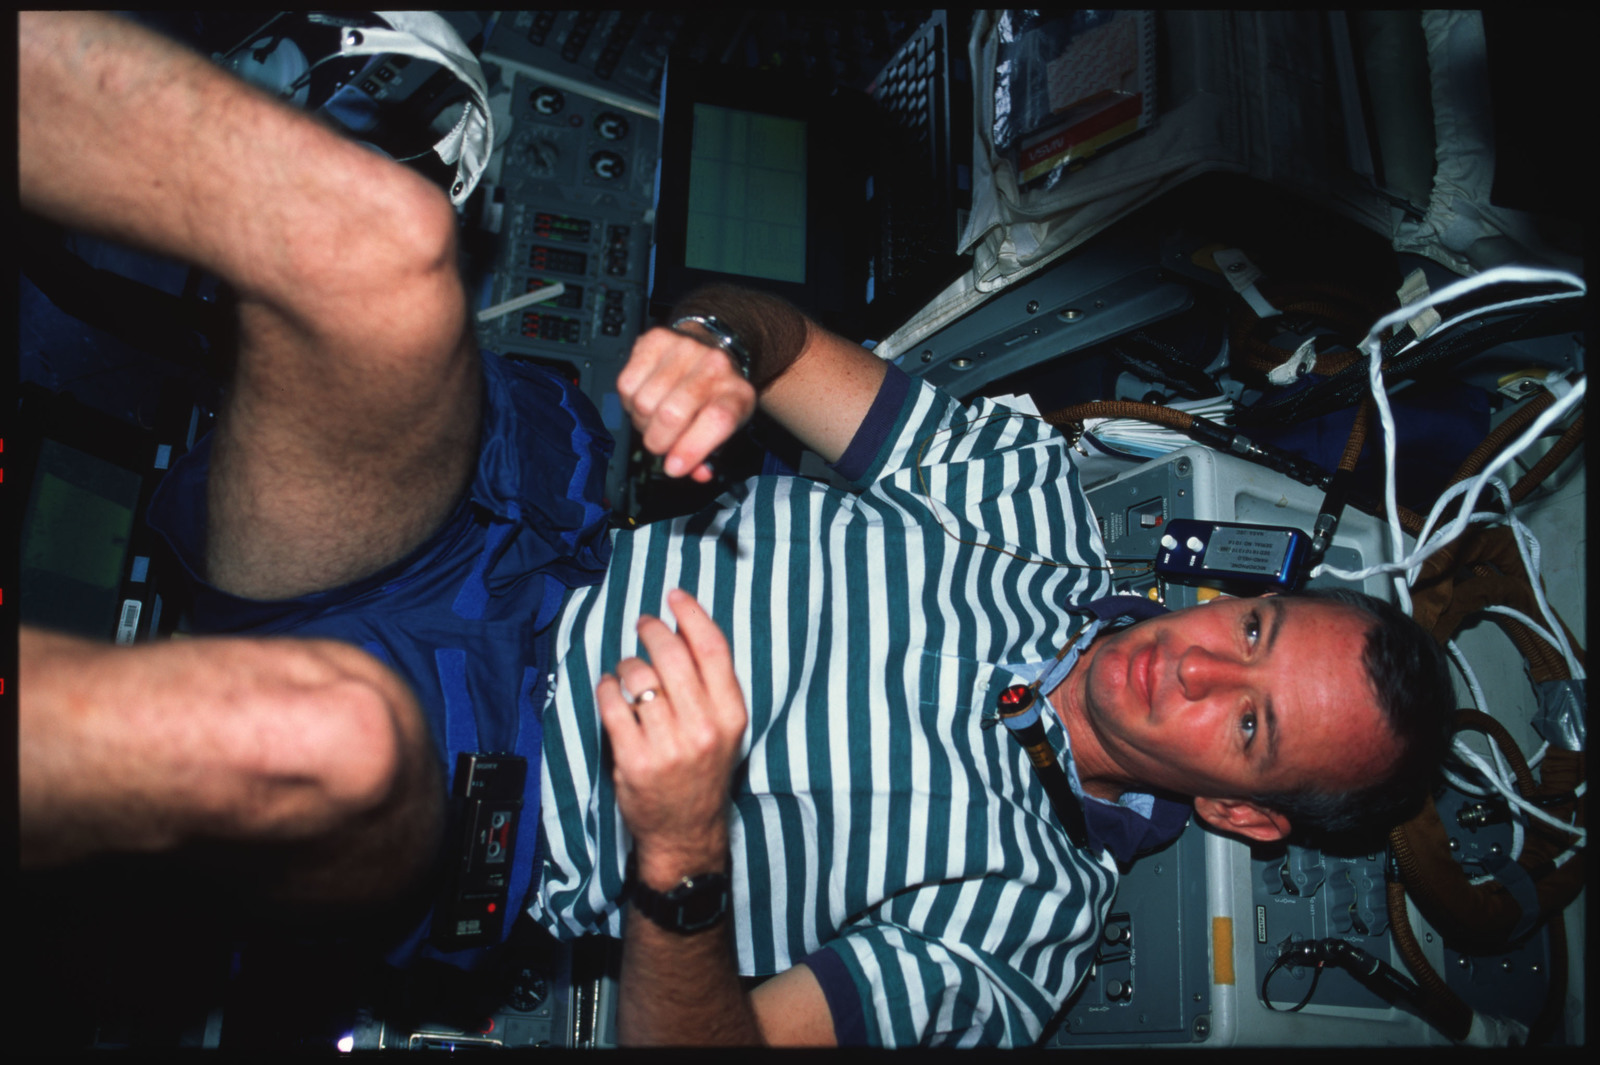 S45-41-005 - STS-045 - STS-45 crewmembers engage in various activities